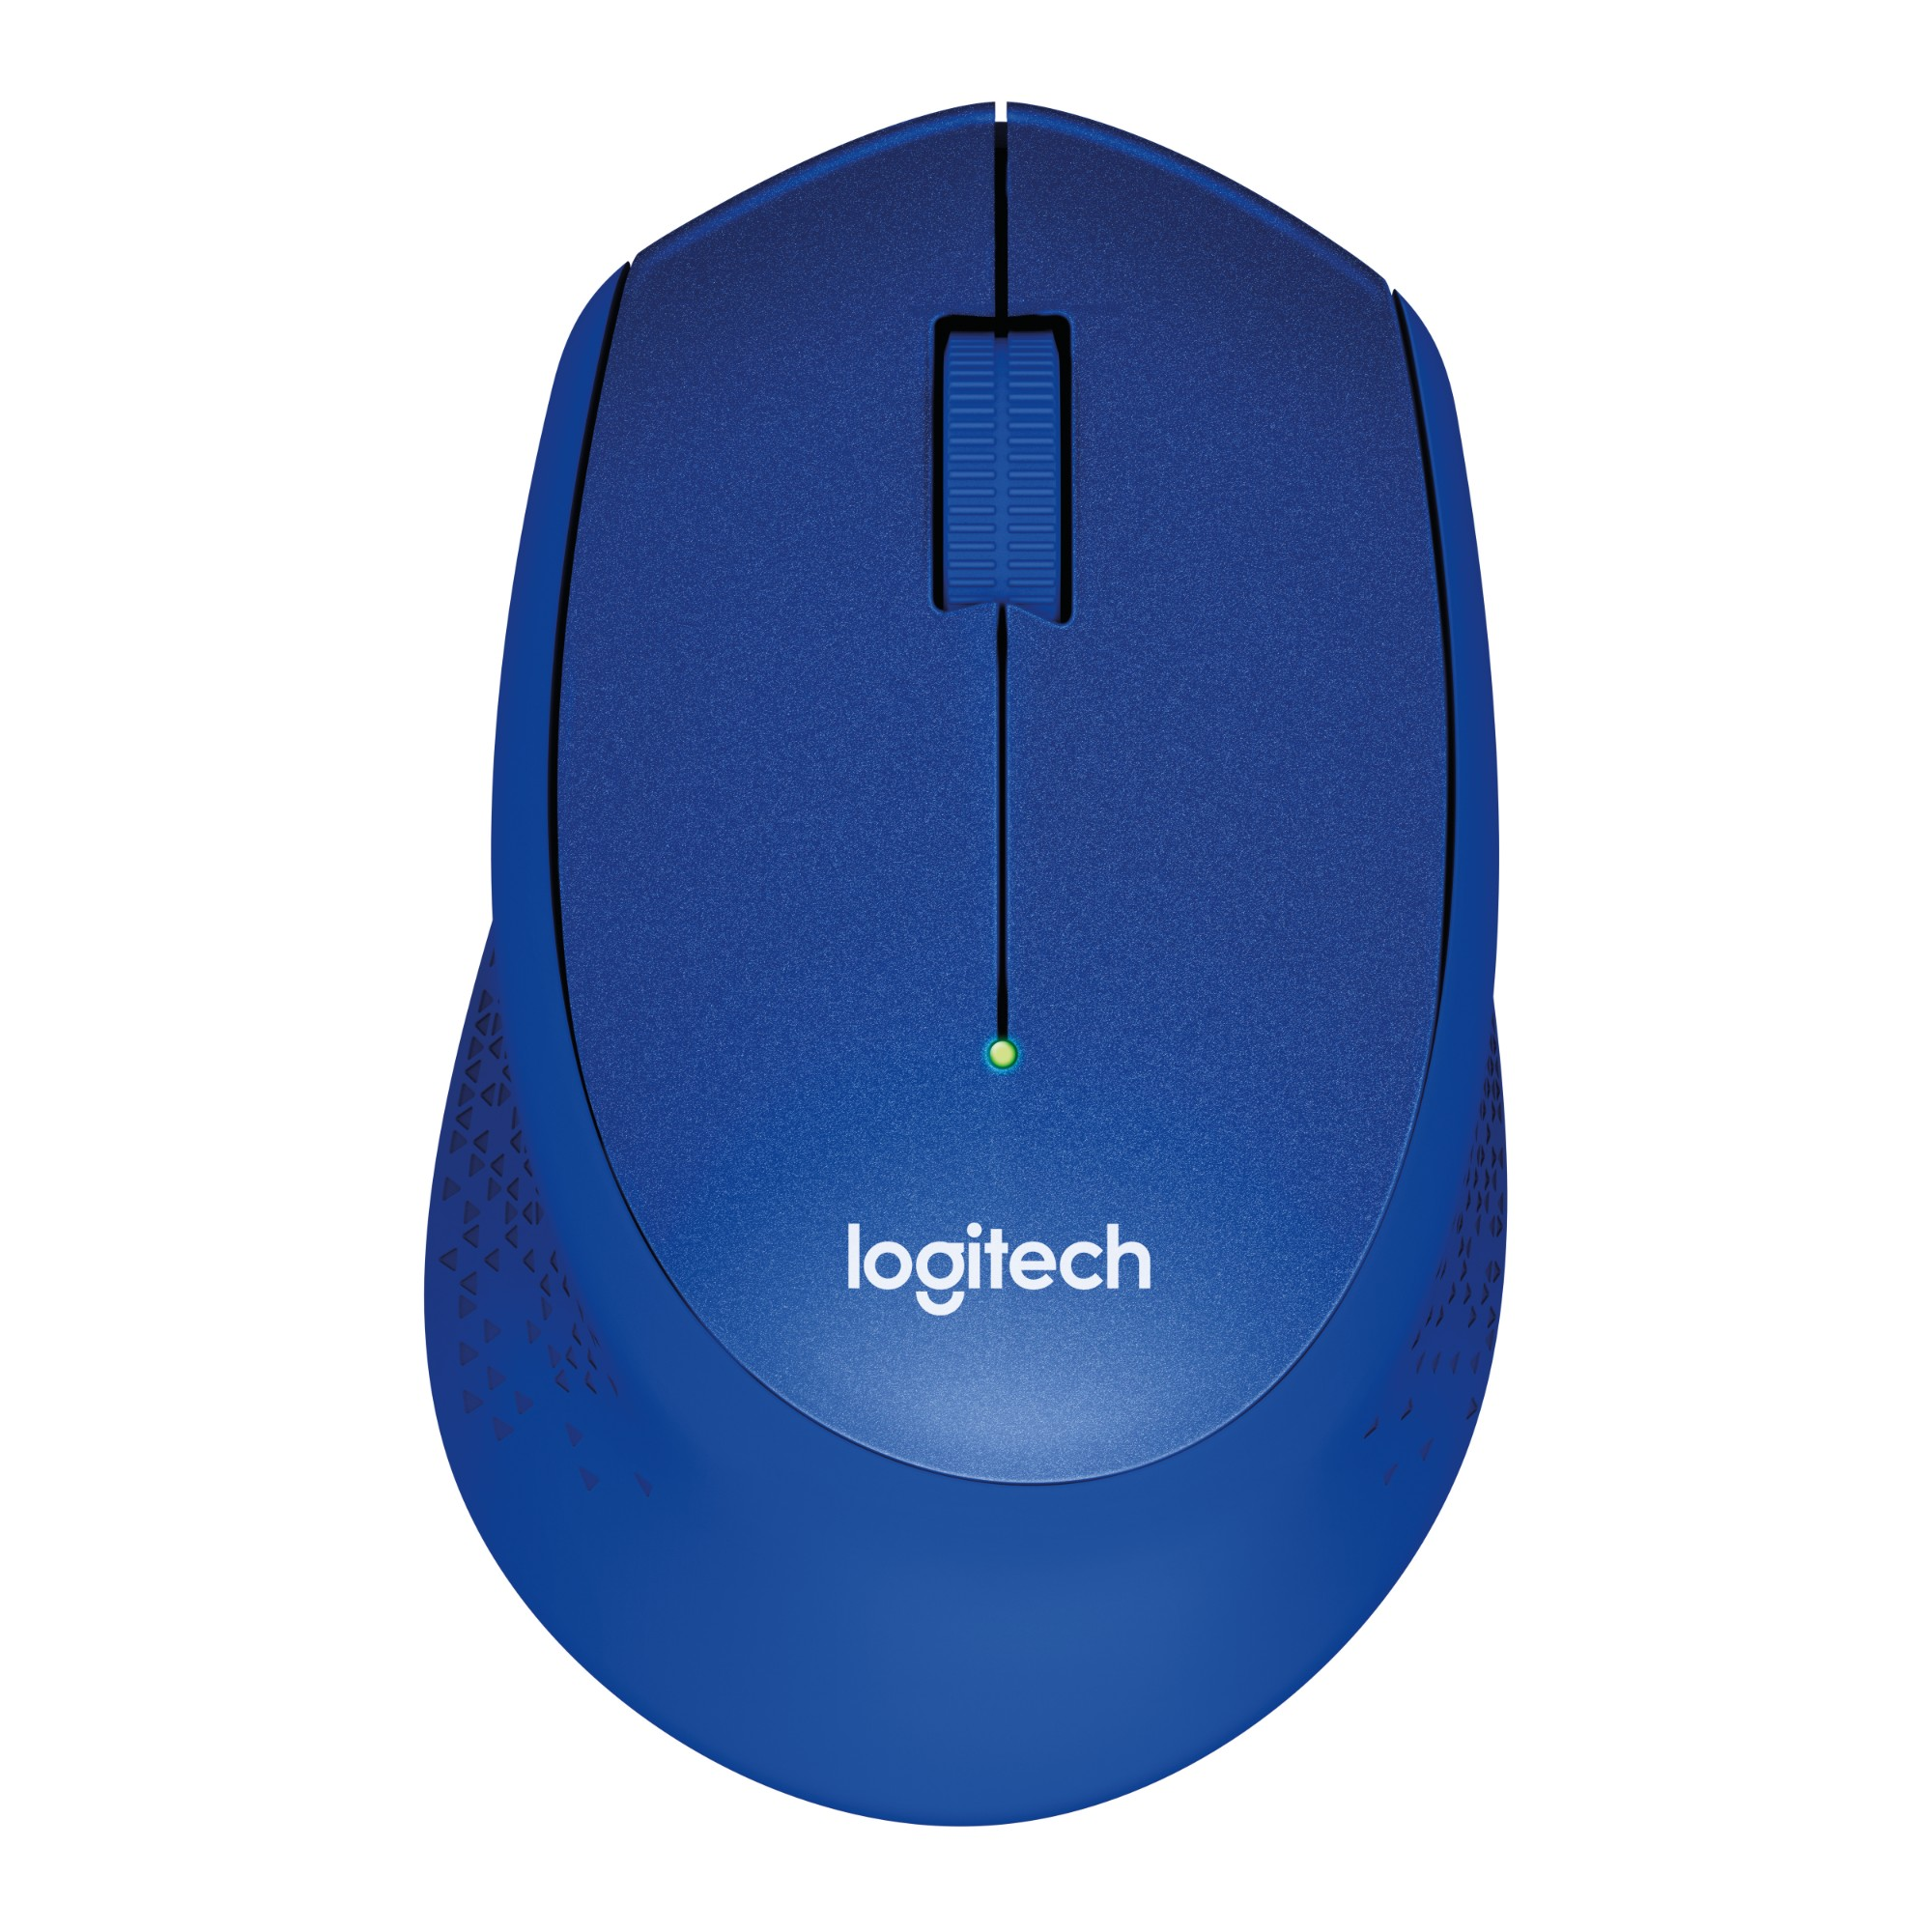 Logitech M330 mice RF Wireless Optical 1000 DPI Right-hand